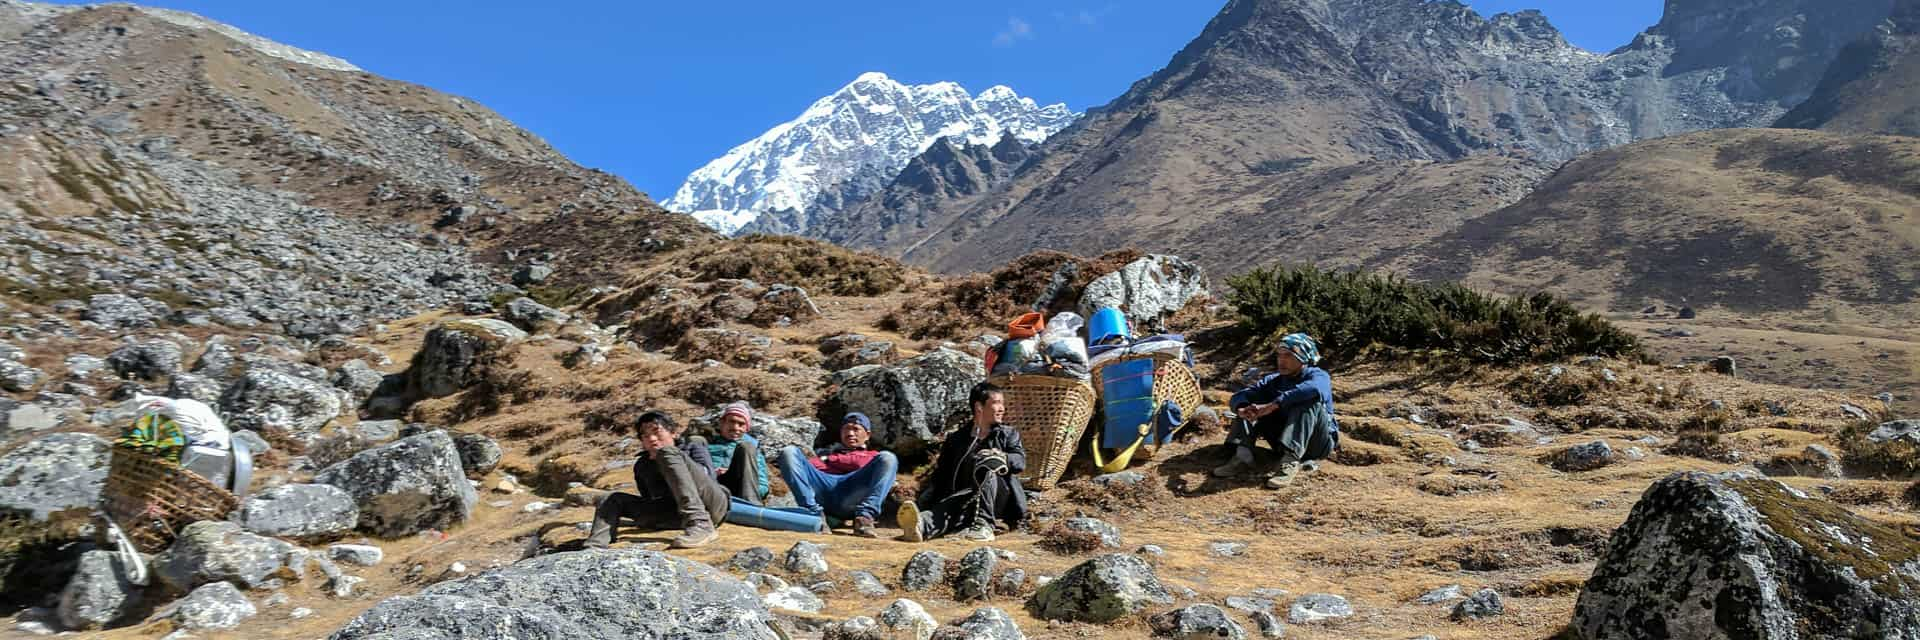 Sherpas resting in the Everest trek